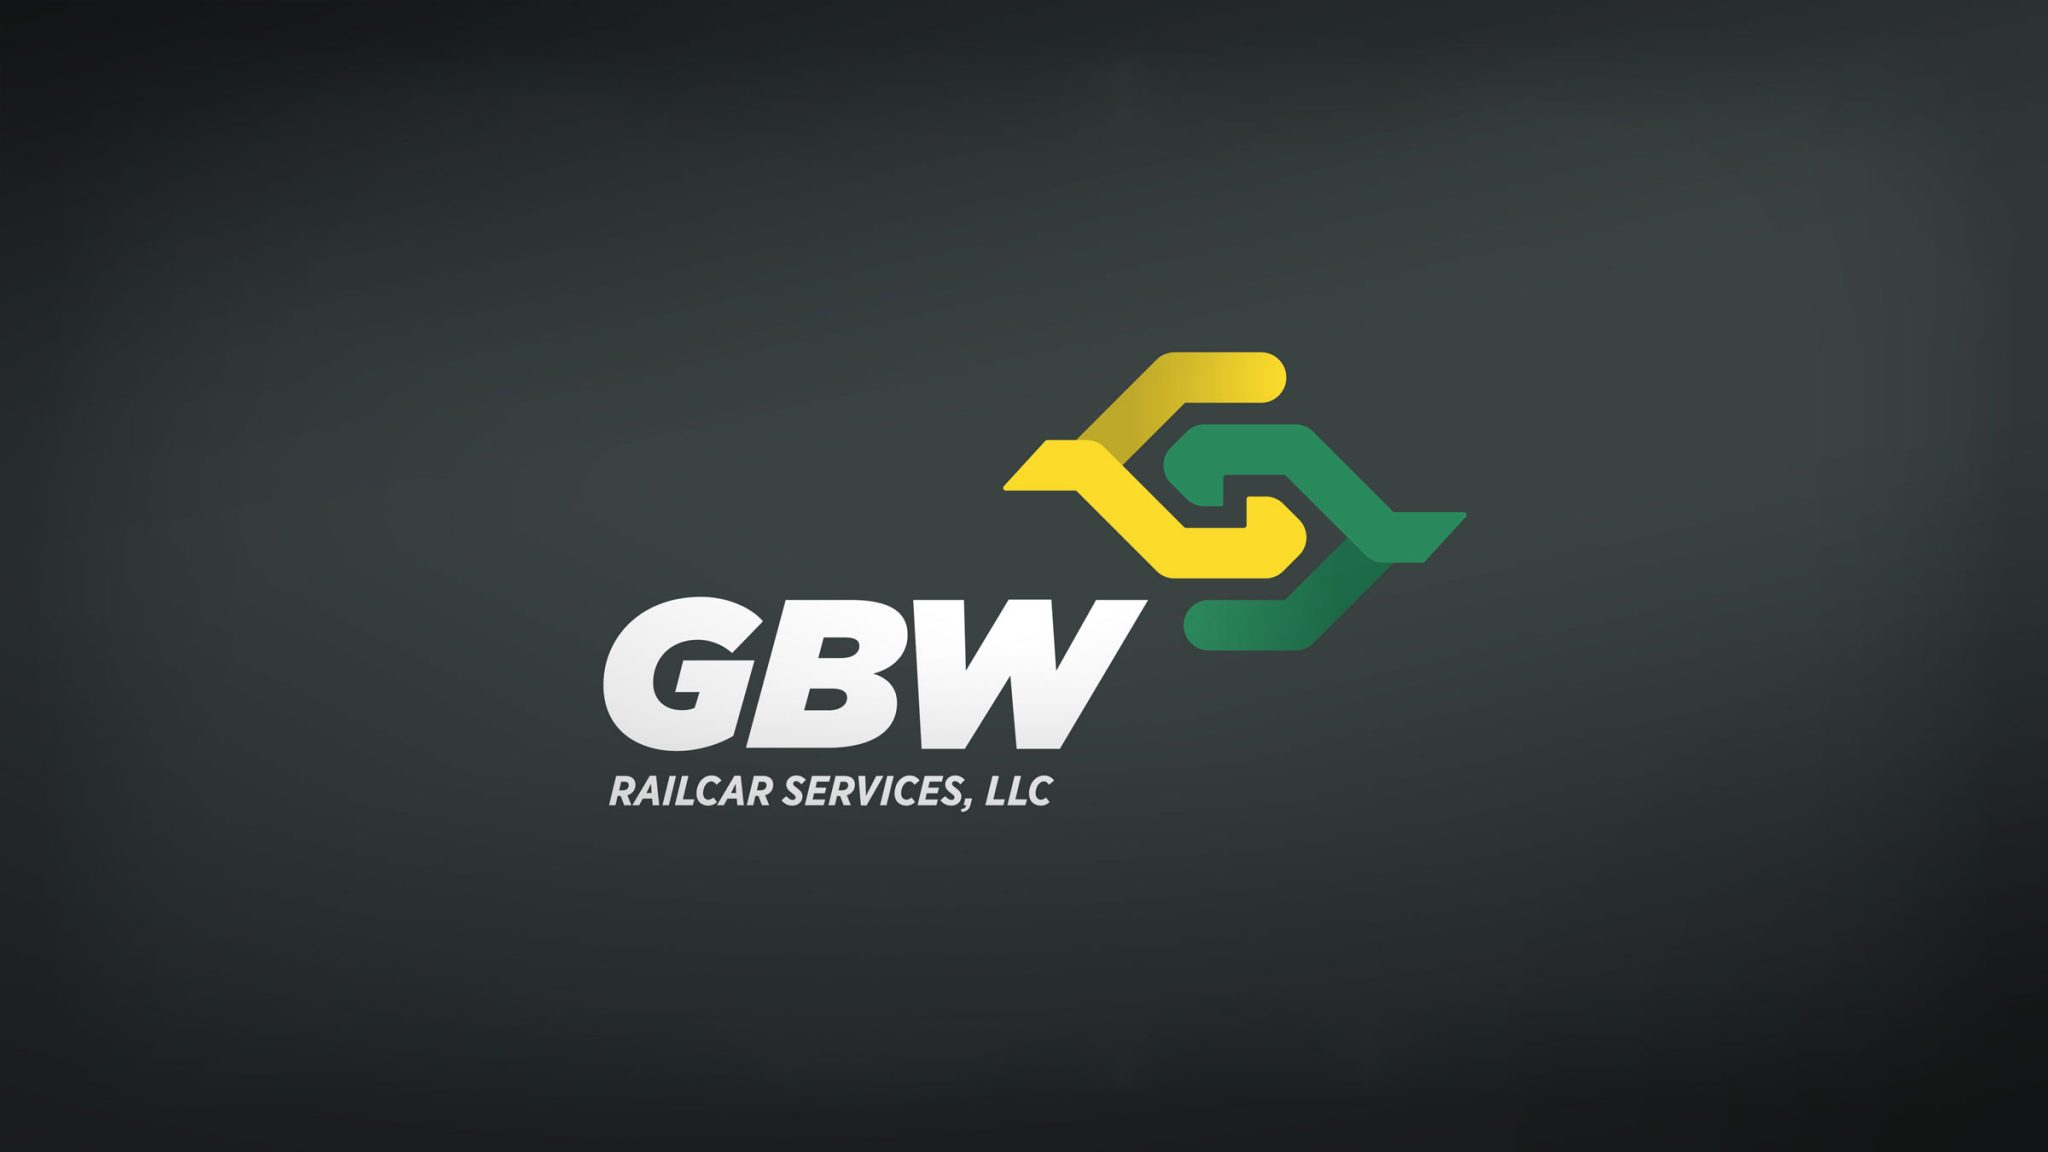 GBW Railcar Services, LLC